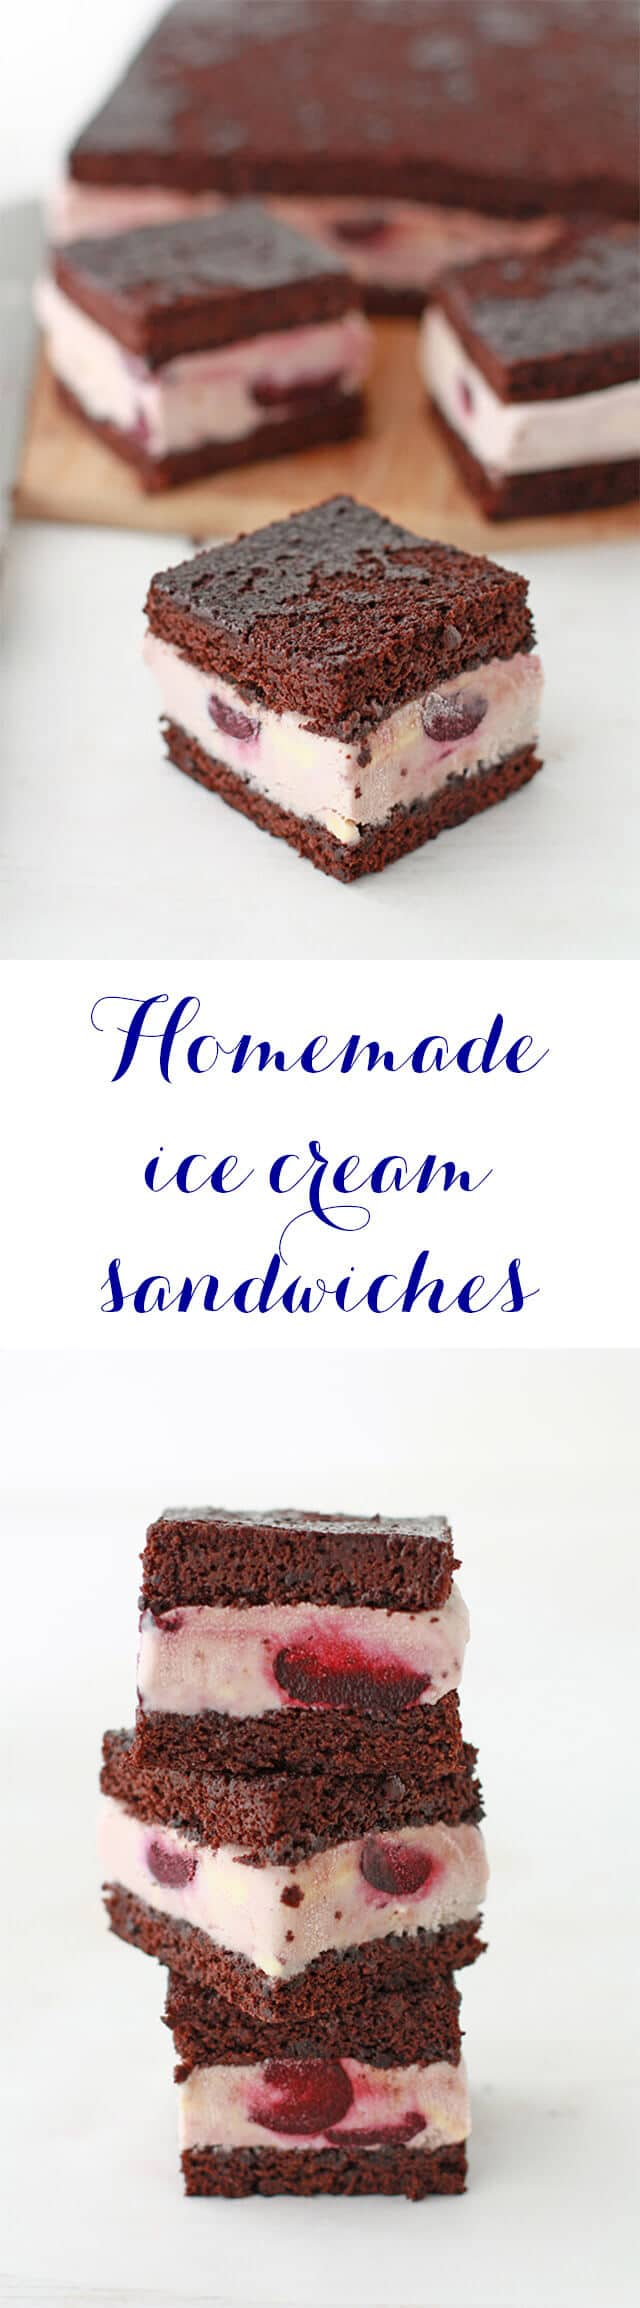 A recipe for classic homemade ice cream sandwiches made with thin layers of chocolate brownie cake and homemade cherry ice cream with bourbon